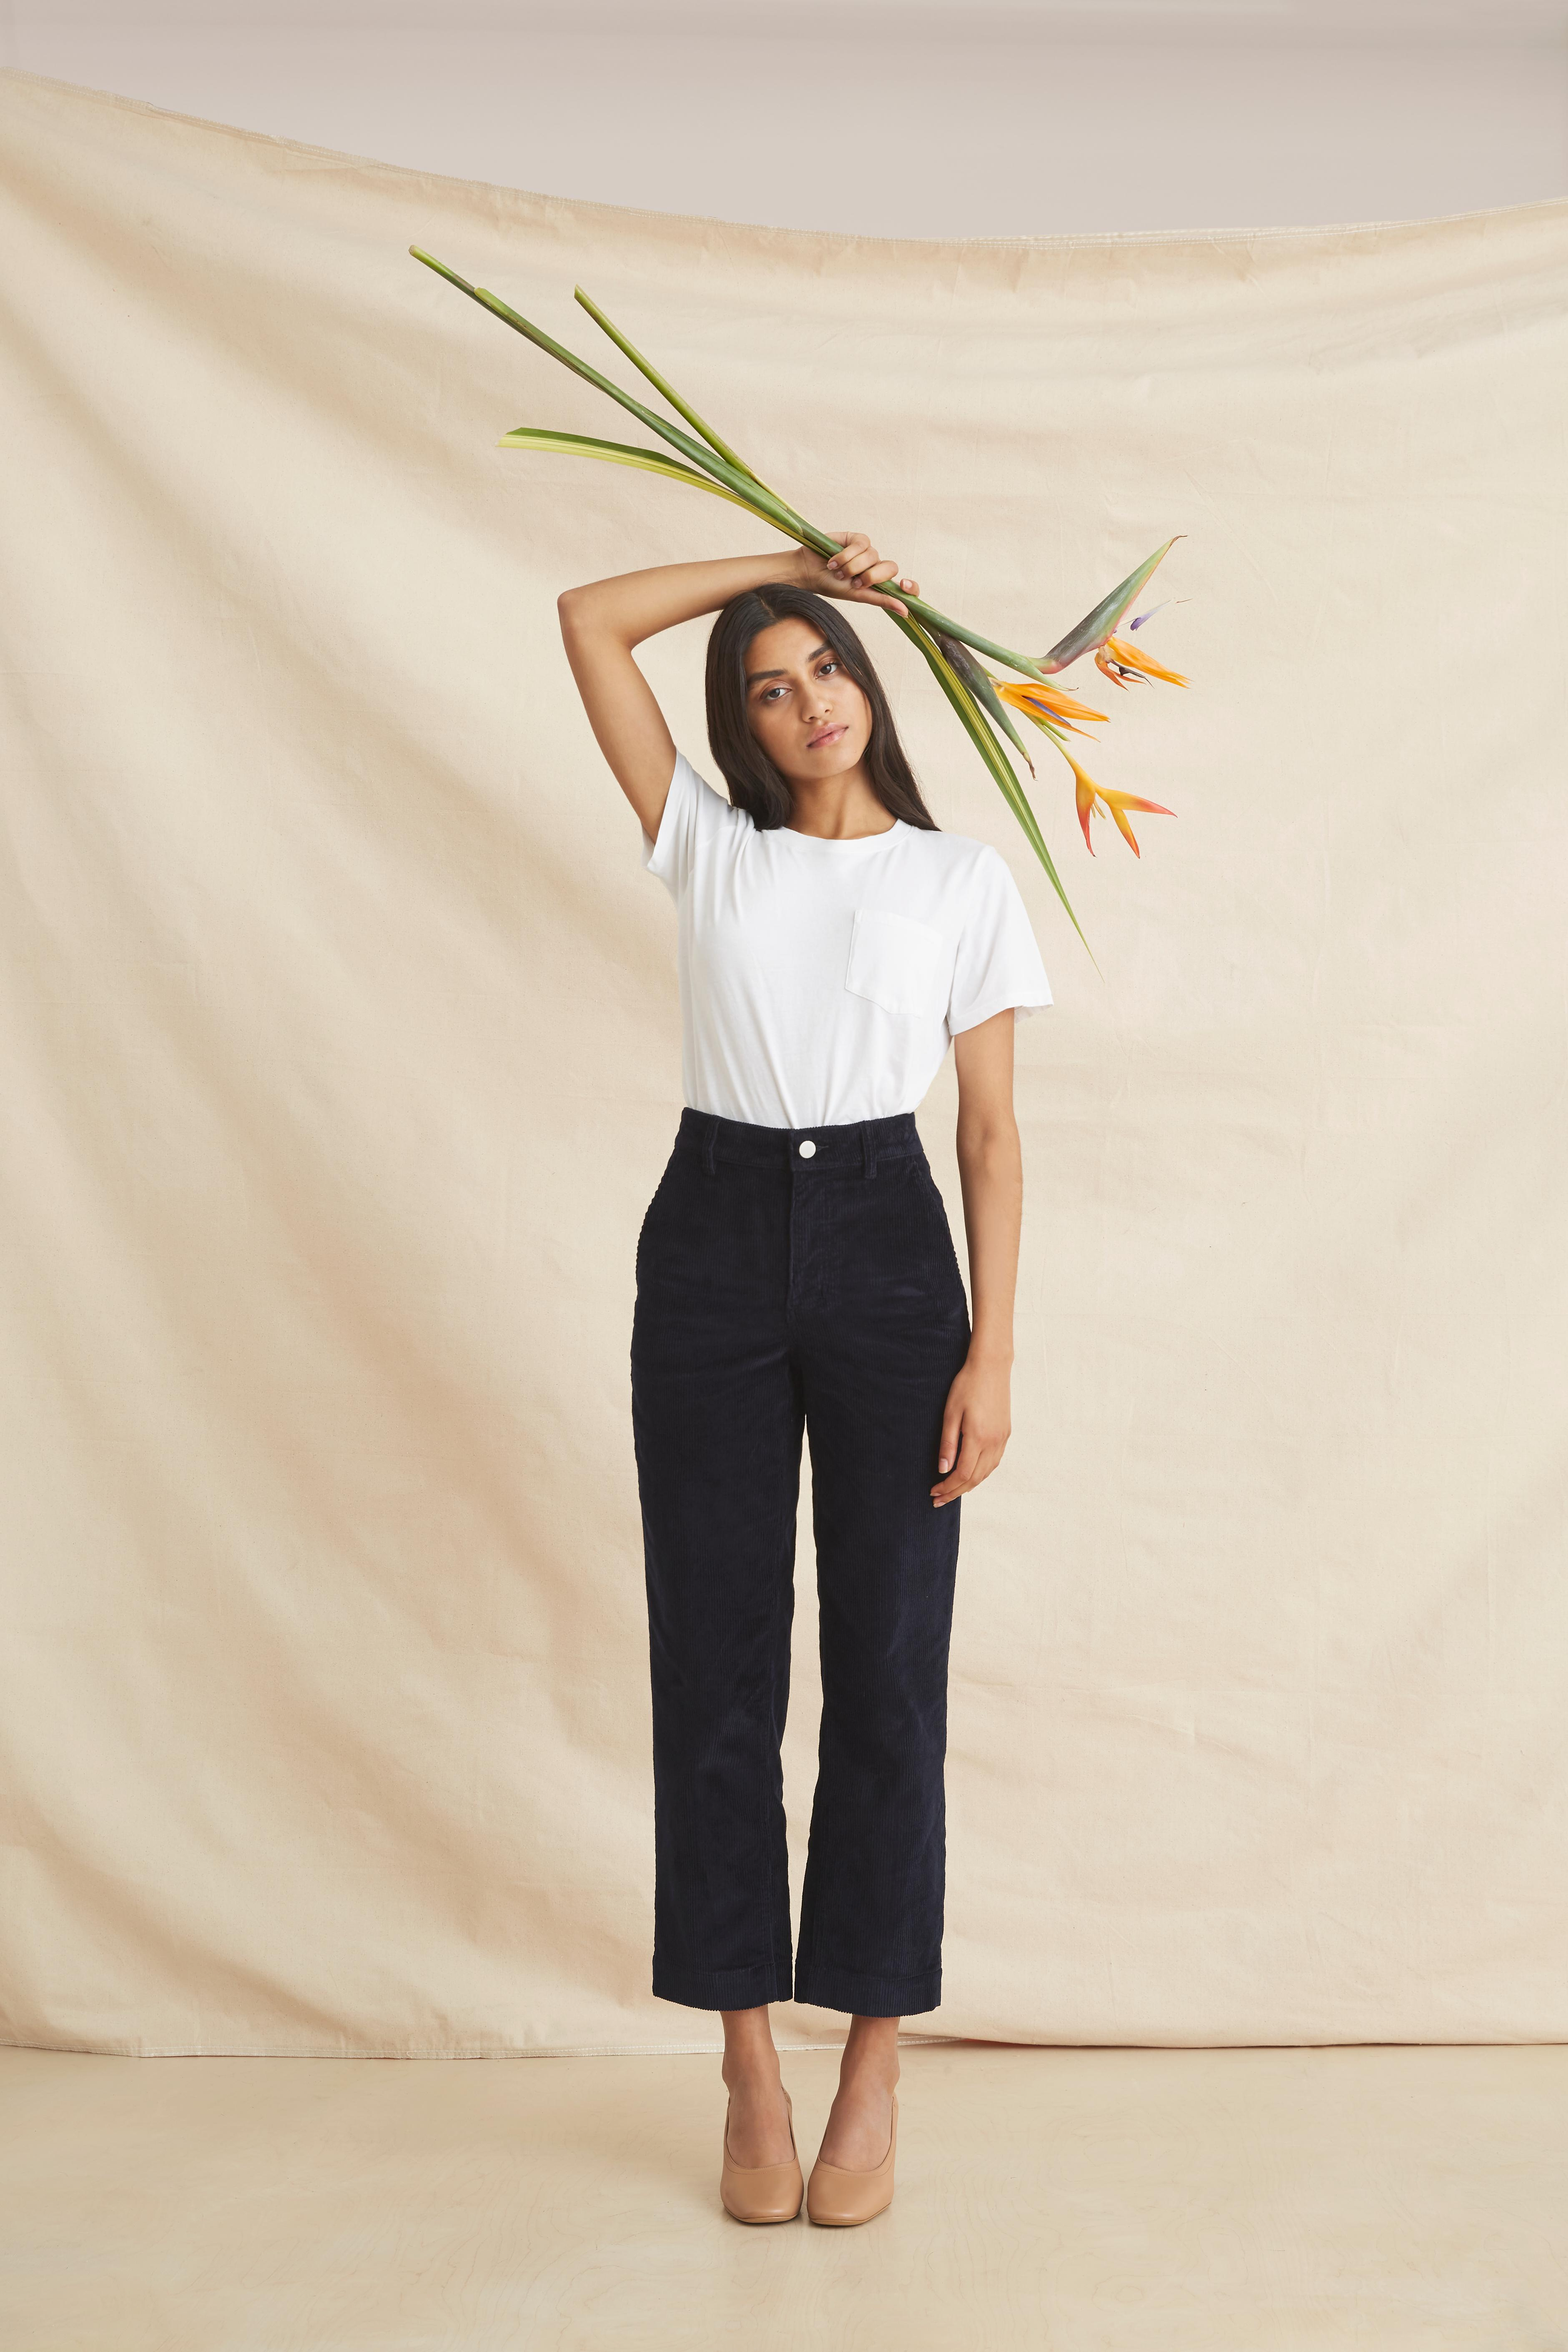 "<a  href=""https://shop.nordstrom.com/c/pop-in-olivia-kim"" target=""_blank"" title=""https://shop.nordstrom.com/c/pop-in-olivia-kim"">Everlane has popped up at Nordstrom</a>{&nbsp;}for a second time, featuring more than 200 items for women and men. They are bringing customers an assortment of luxury essentials from outerwear made with recycled plastic to carbon-neutral shoes and the world's cleanest denim. Exclusive to the shop are new shades in Everlane's Grade-A Cashmere Collection in vibrant colors including persimmon, pink lipstick and purple. The shop is also introducing Tread by Everlane: The World's Lowest Impact Sneaker, exclusively in a new lightning yellow shade. Check out this pop-up at the Nordstrom flagship until November 17, 2019 (Image courtesy of Nordstrom)."